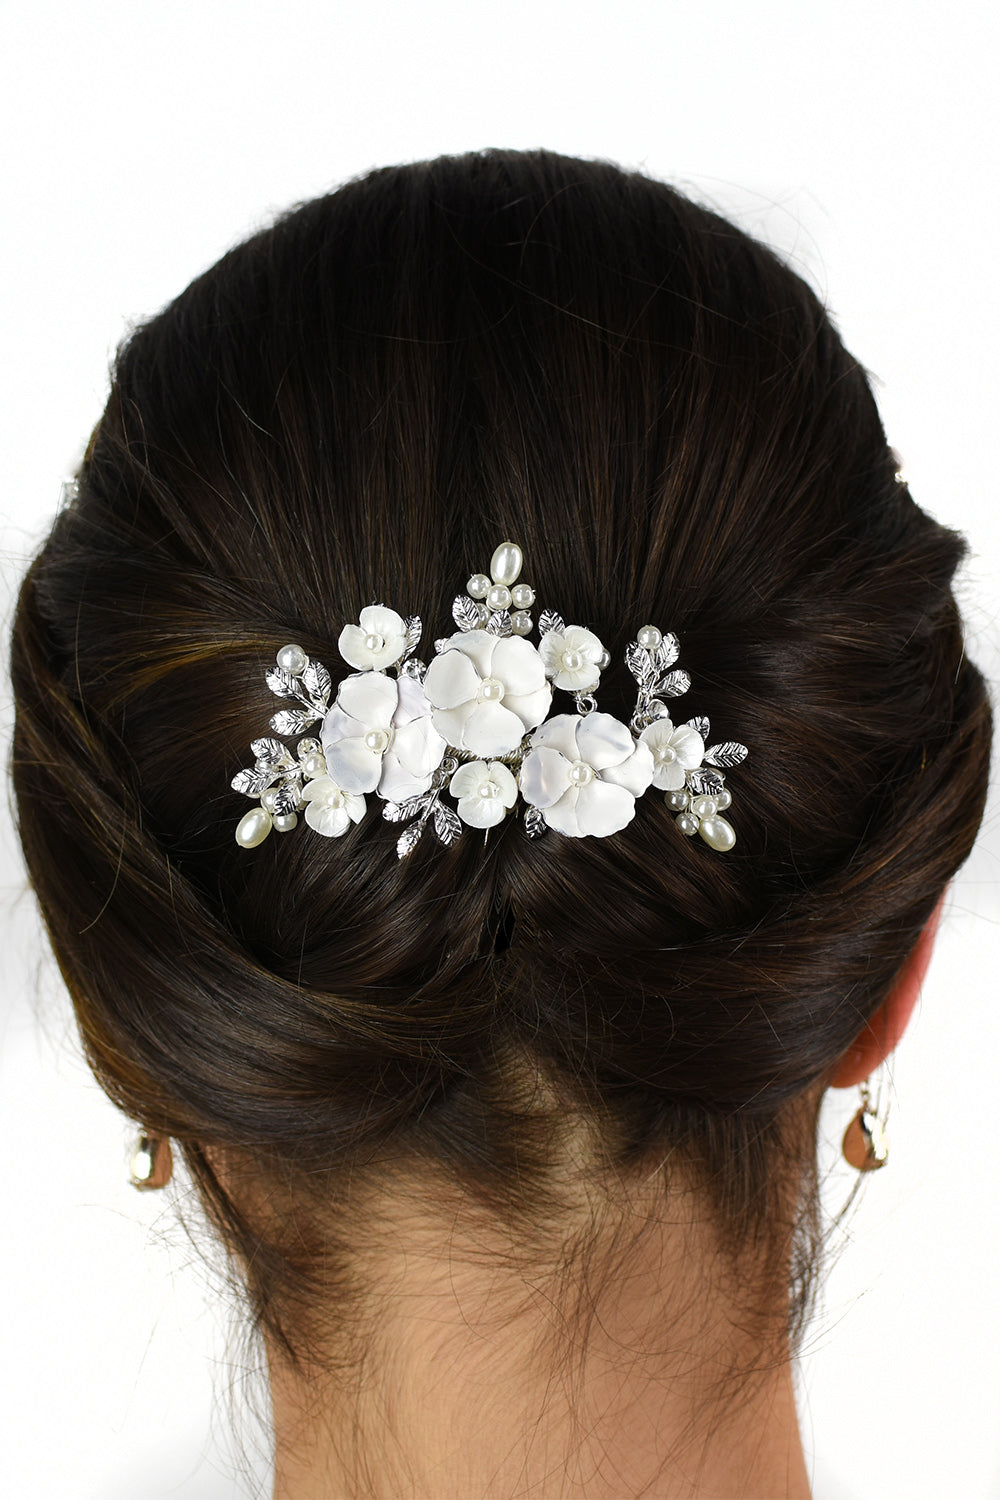 The back of a models' head with her brown hair wearing a white flower comb